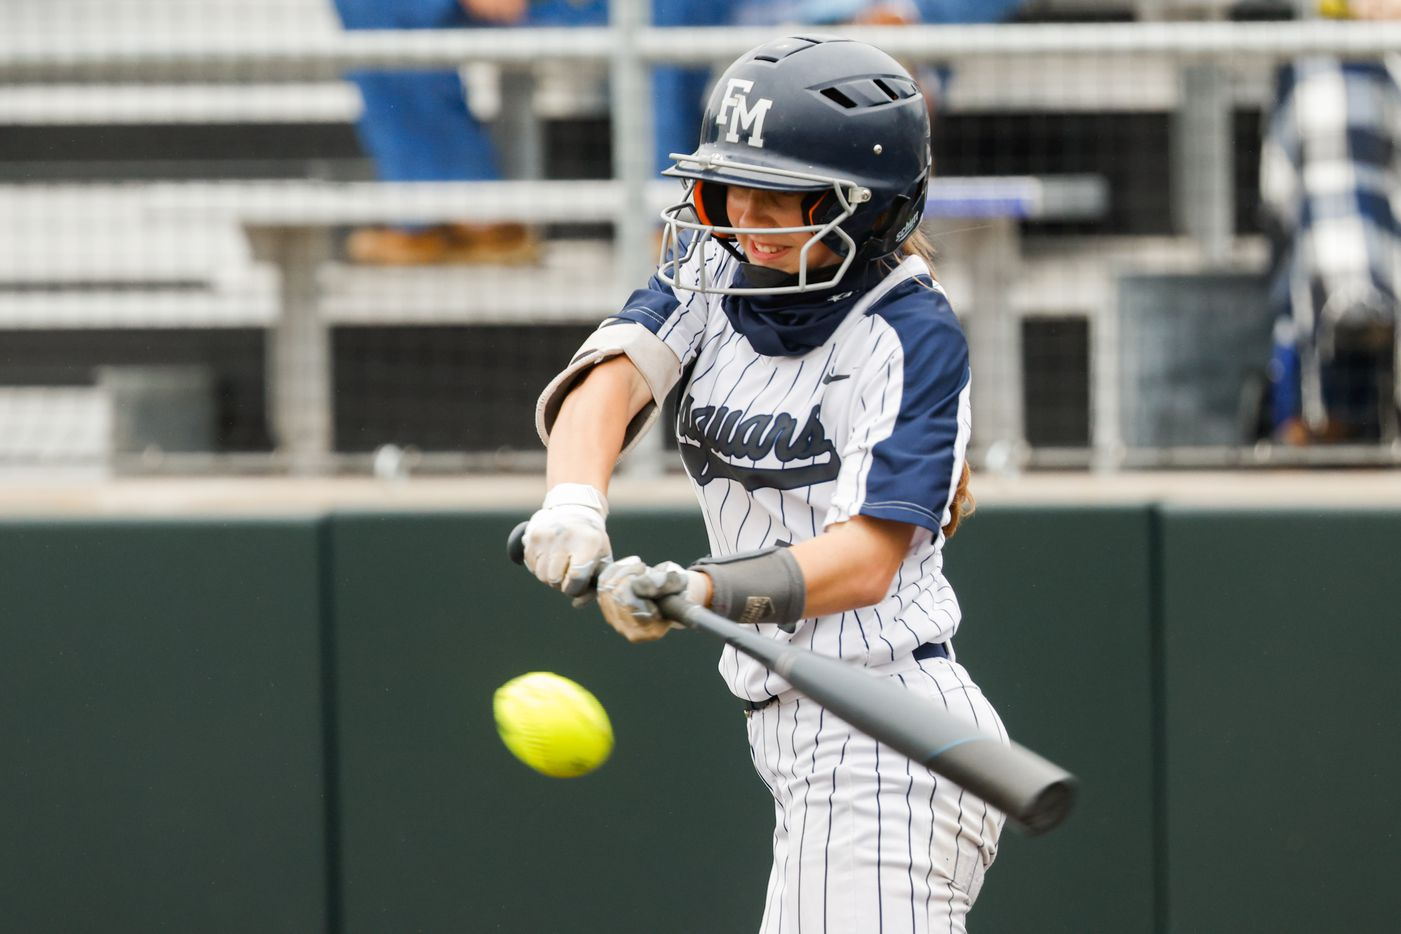 Flower Mound's Logan Halleman (7) hits a home run against McKinney Boyd during the first inning of a Class 6A bi-district playoff game on Friday, April 30, 2021, in Denton. (Juan Figueroa/The Dallas Morning News)